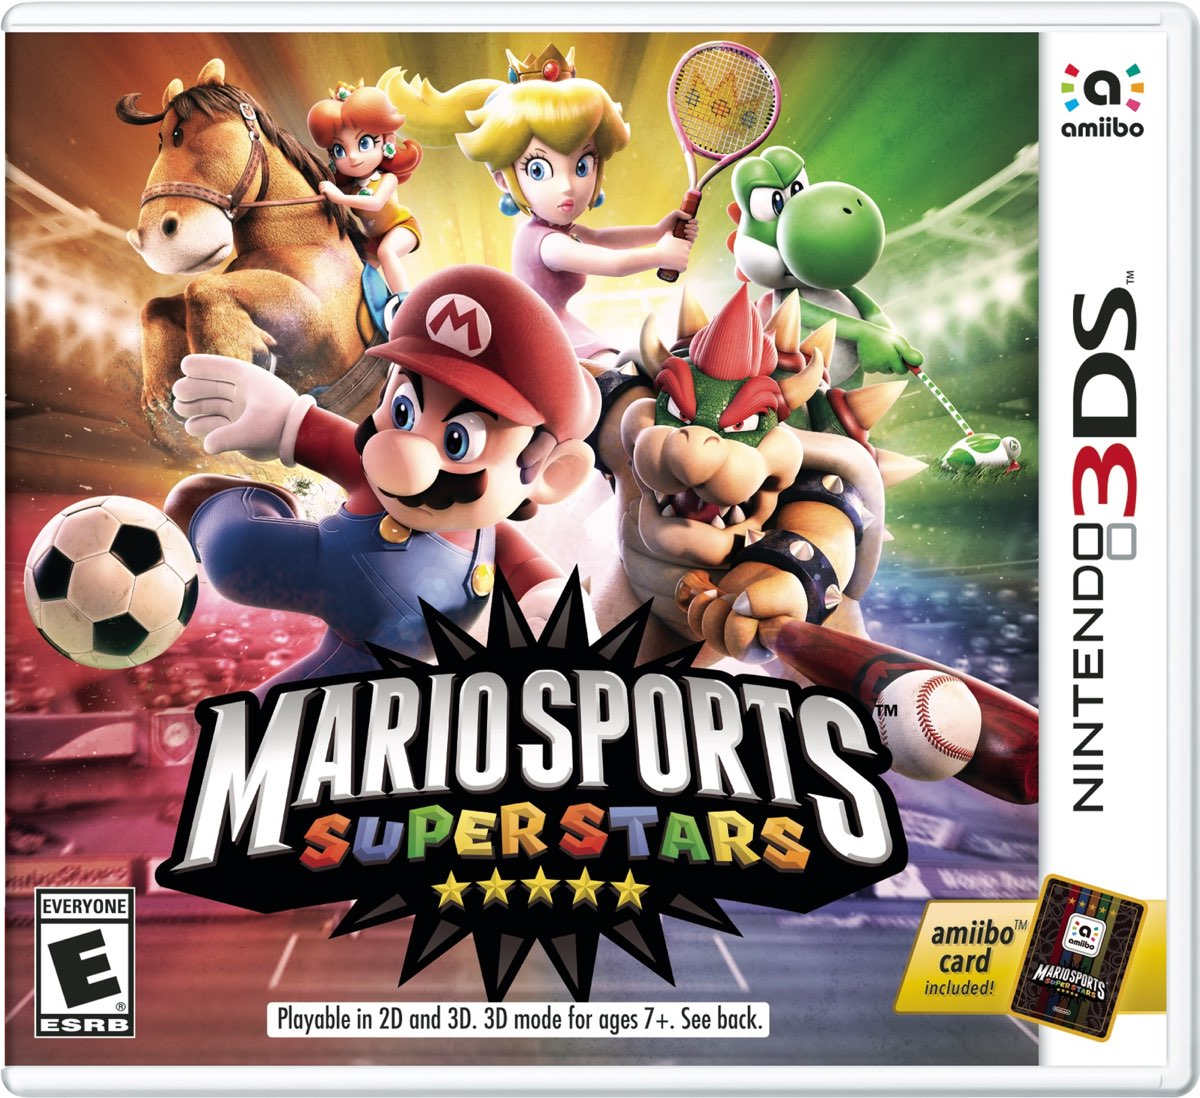 Mario Sports Superstars Gets Date Pikachu Yellow 3ds Xl More New Nintendo Edition After The Most Successful Quarter Of Software Sales In History Fueled By Record Breaking Pokmon Sun And Moon Games